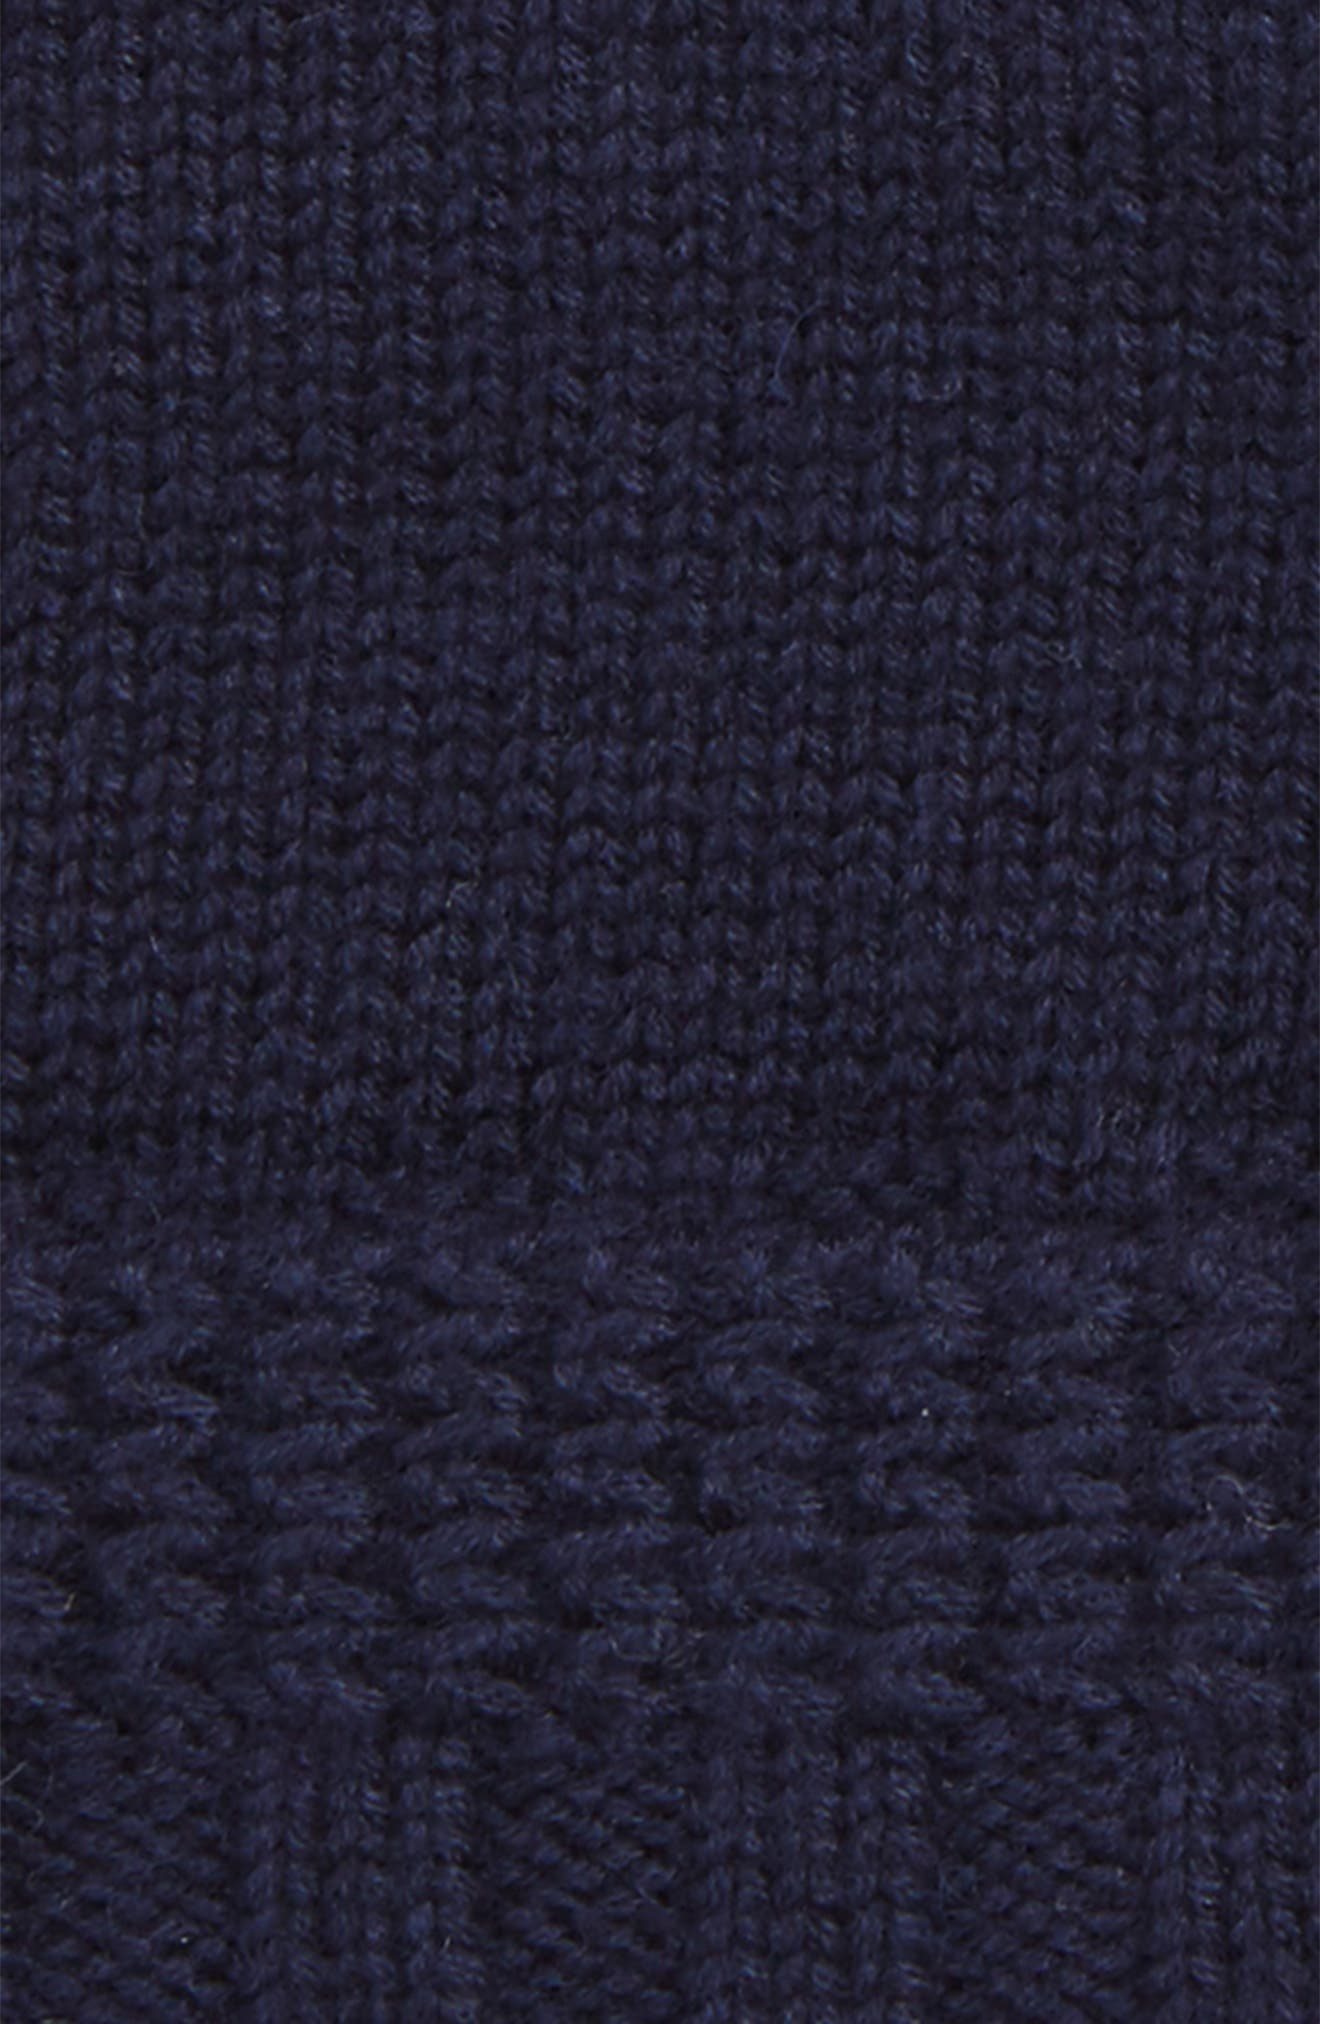 UGG<sup>®</sup> Texture Knit Fingerless Gloves,                             Alternate thumbnail 5, color,